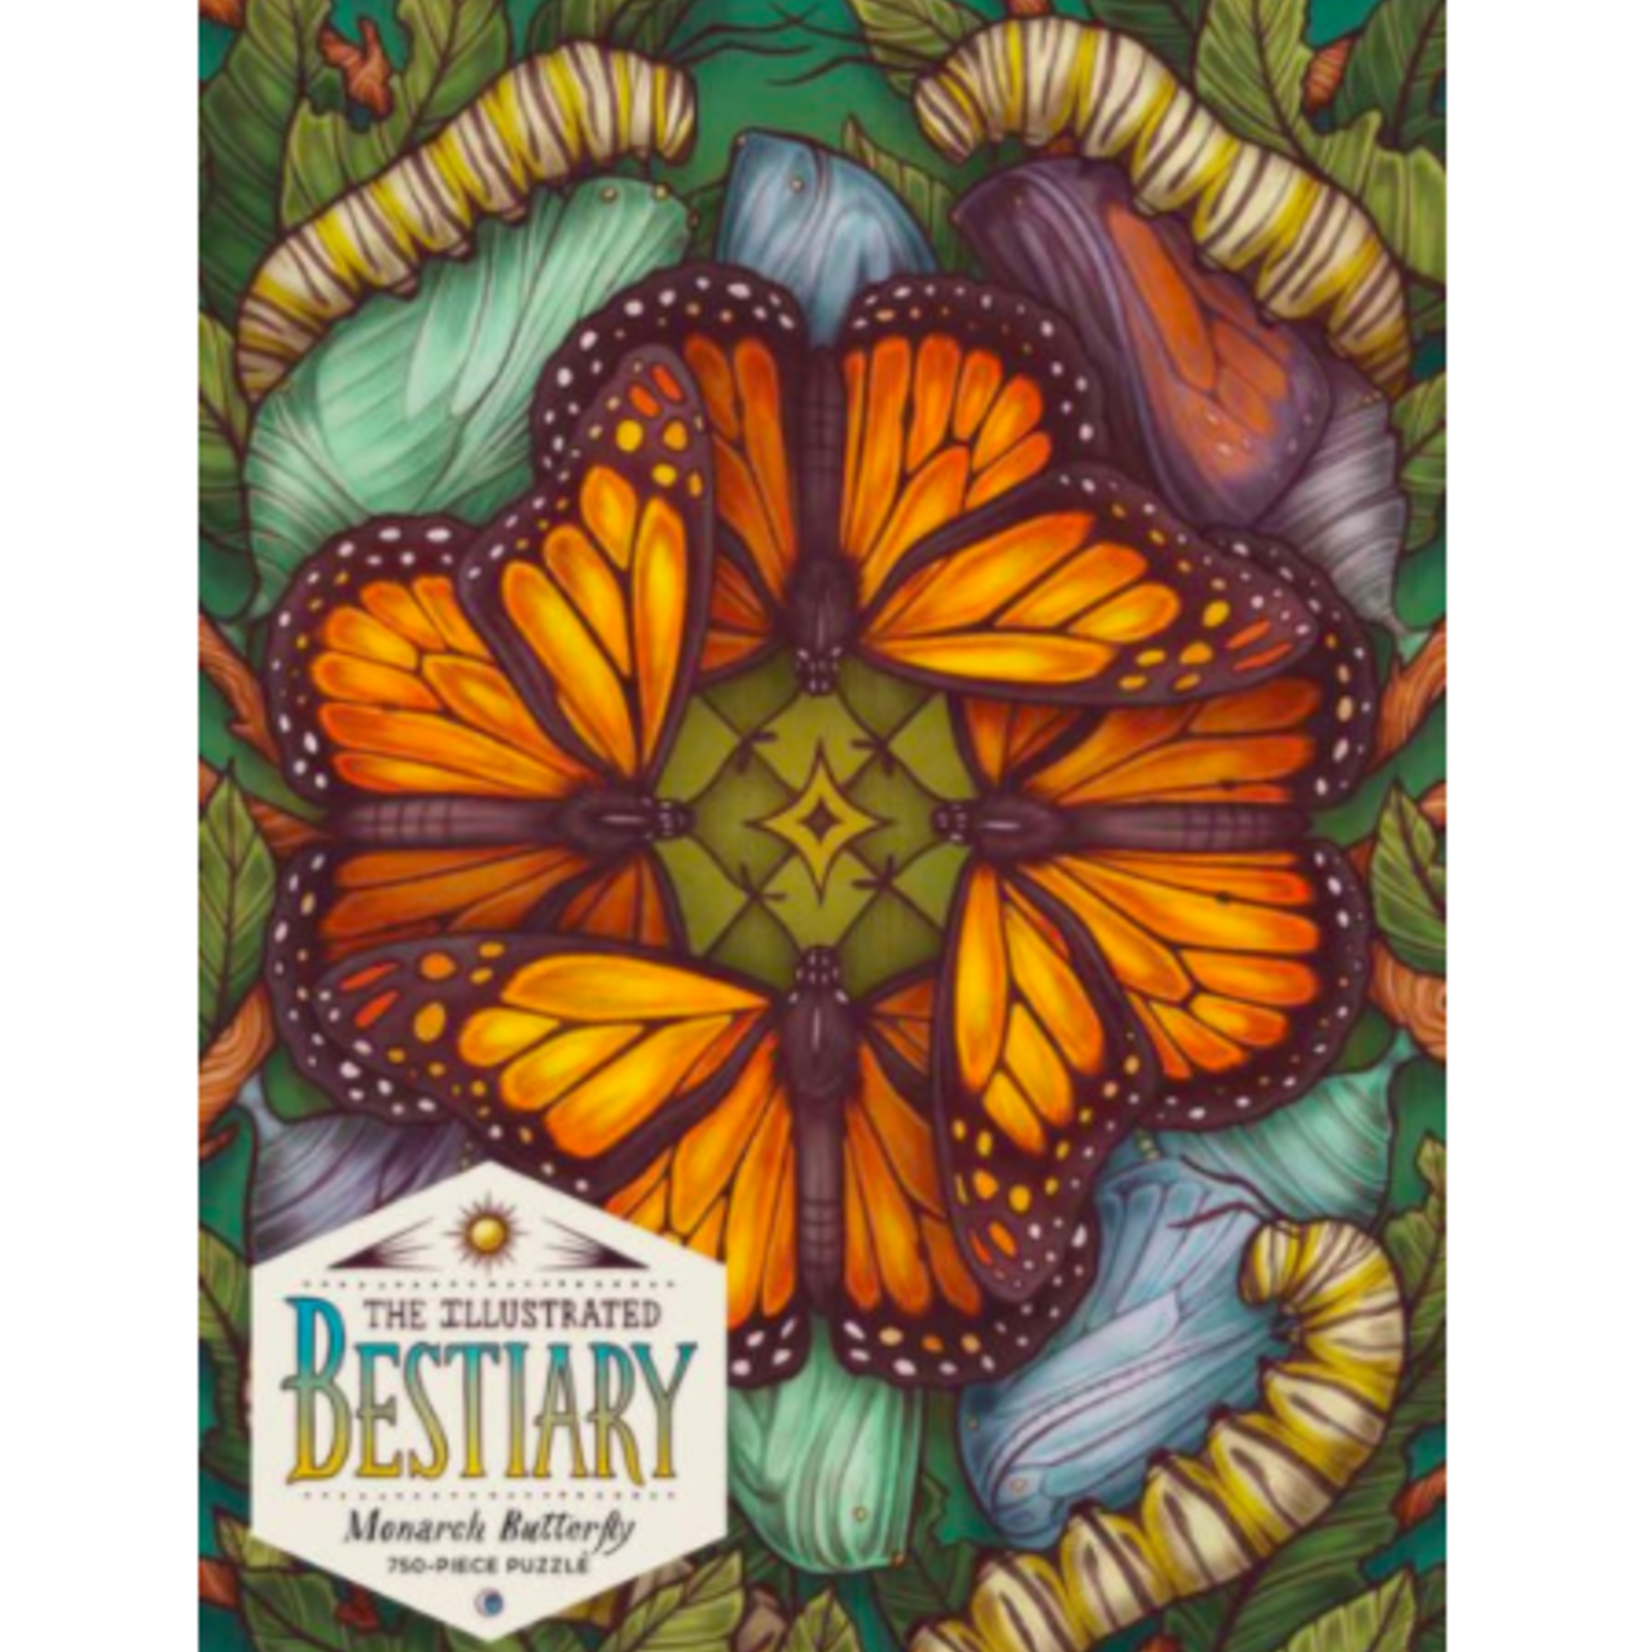 The Illustrated Bestiary: Monarch Butterfly 750 Piece Puzzle